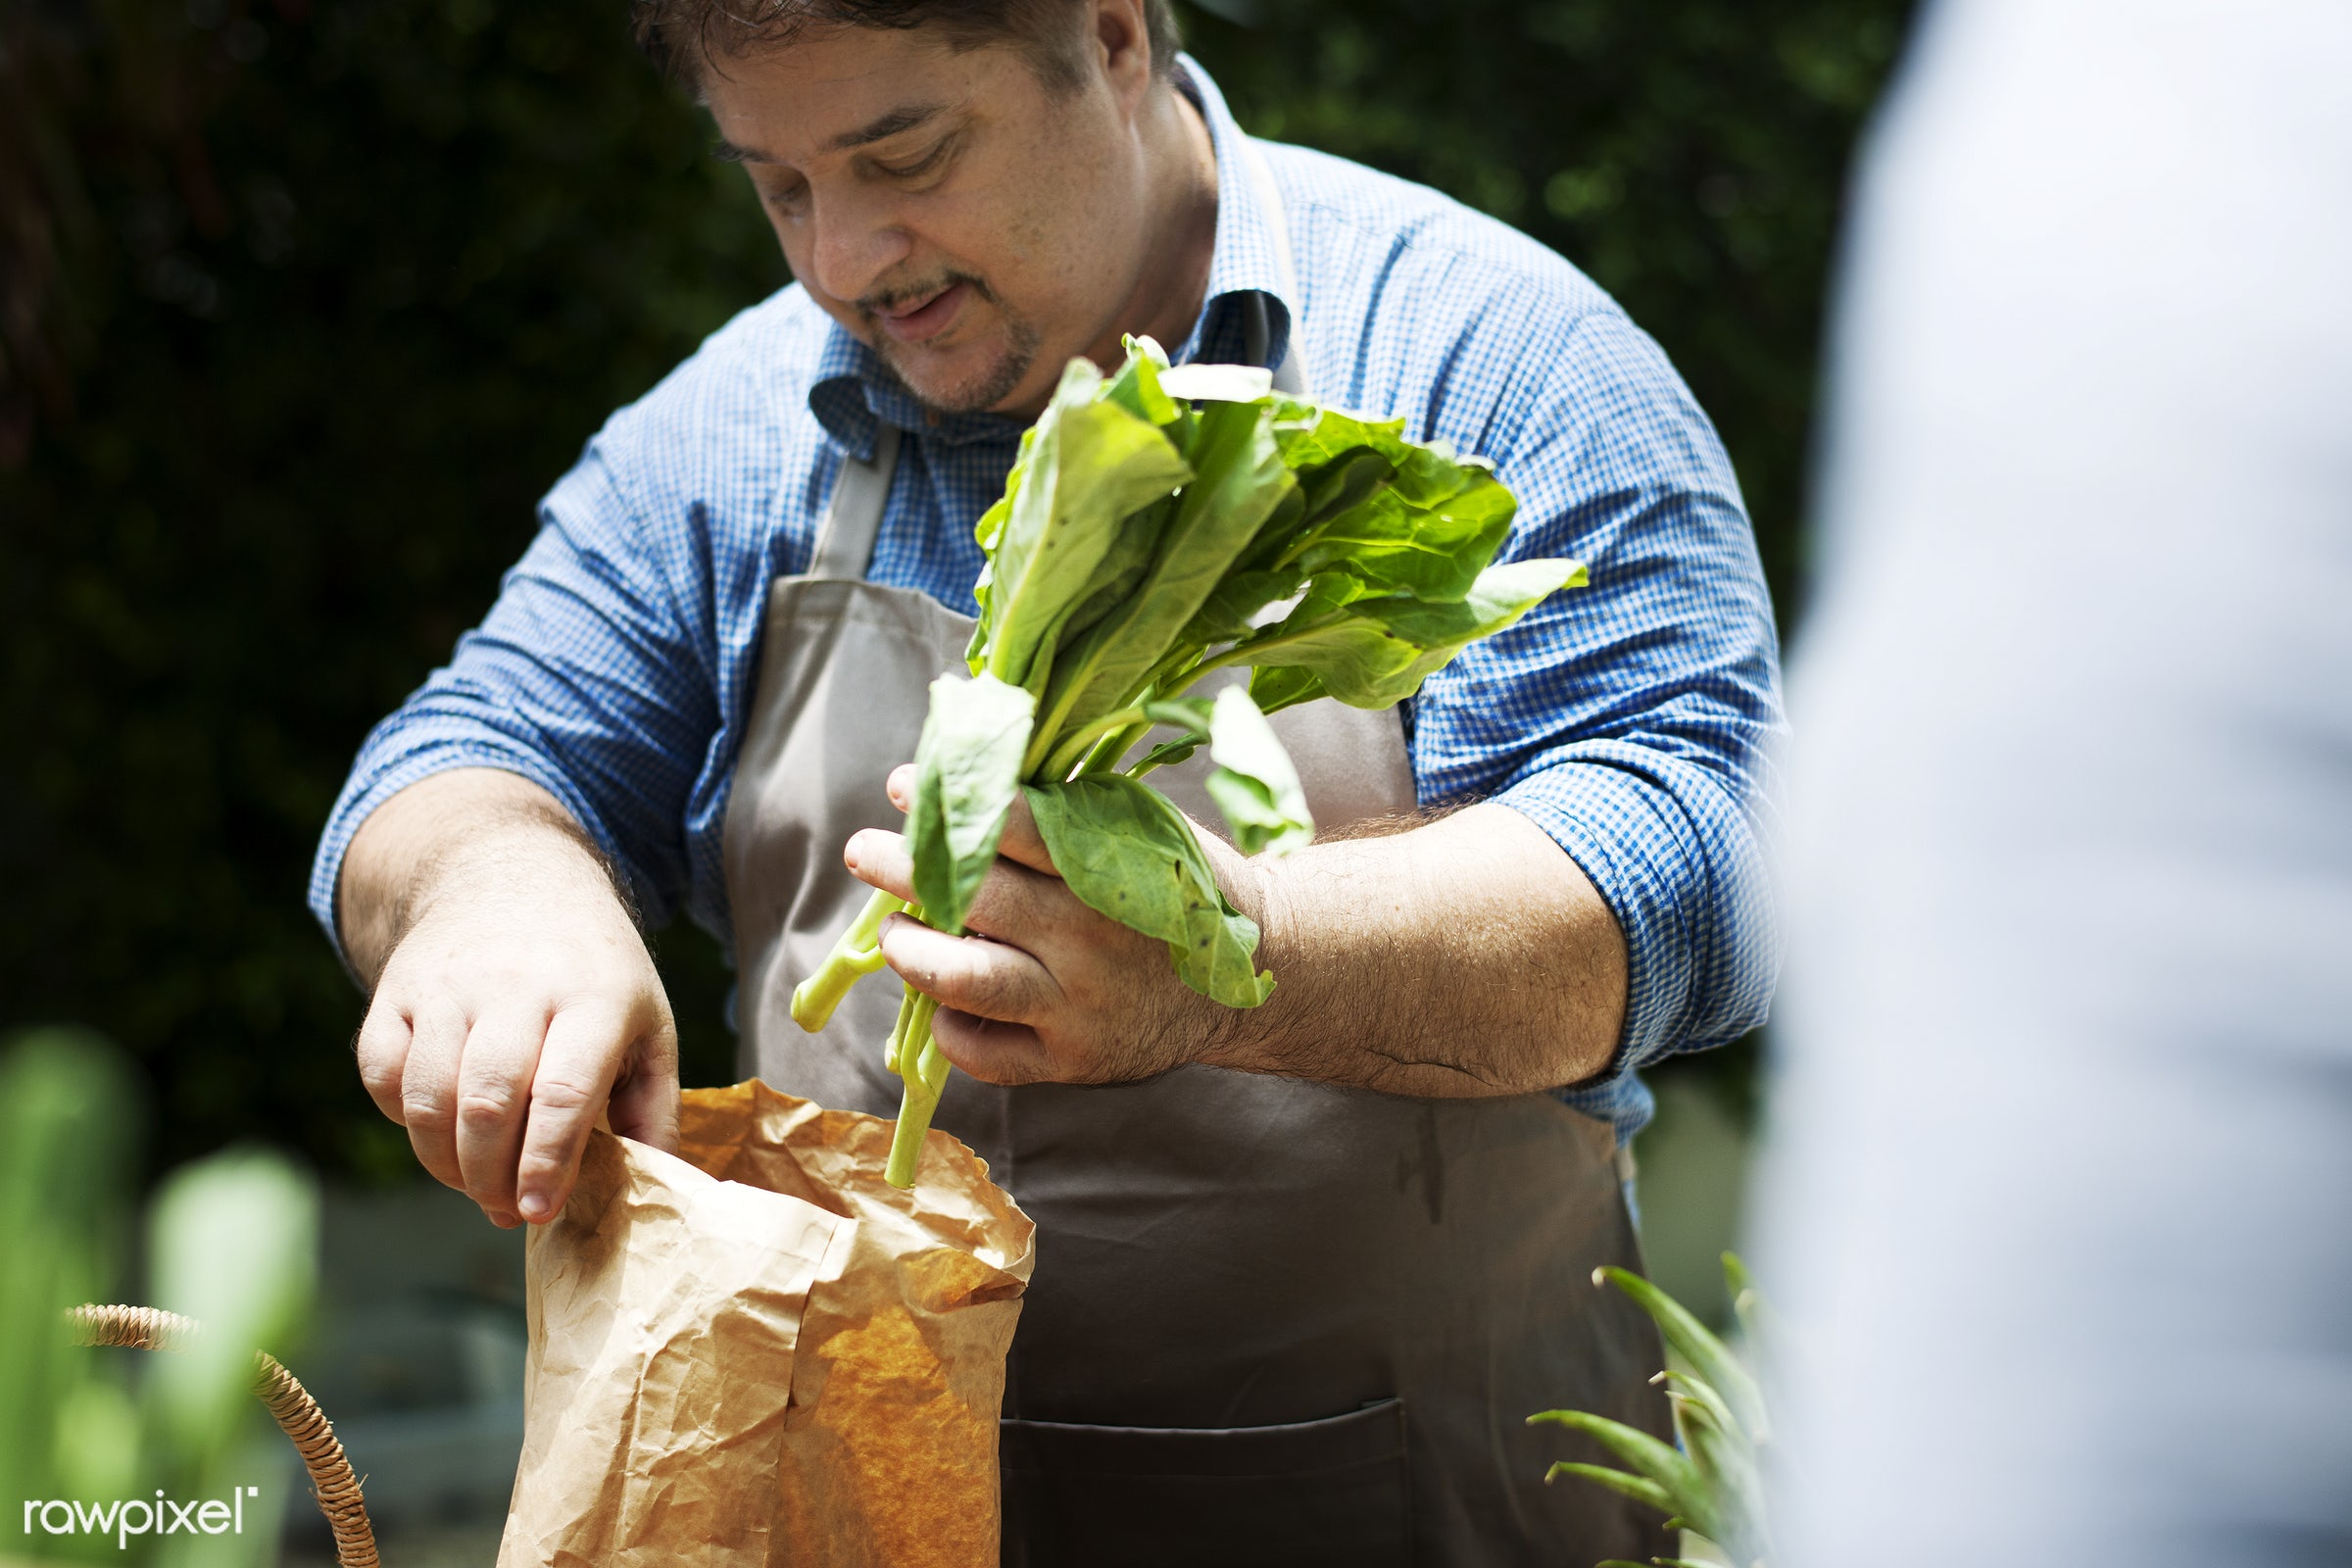 raw, diverse, hispanic, farm, ingredients, farmer, nature, fresh, hands, products, agriculture, variety, organic, paper bag...